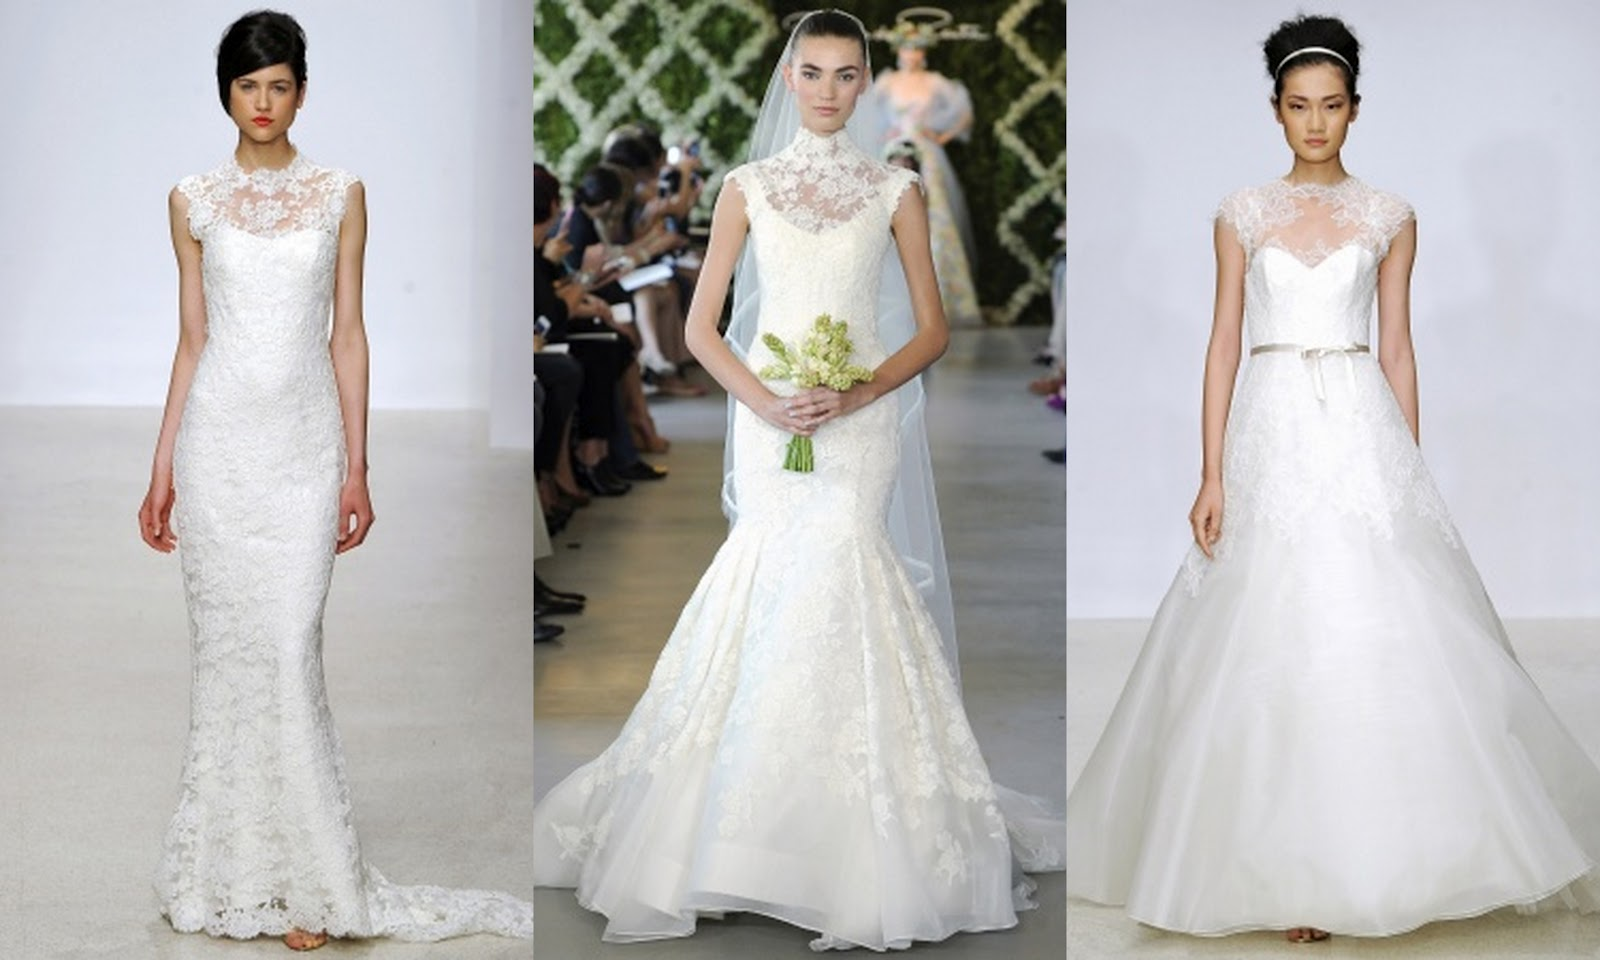 Wedding Dresses For   At China Mall Johannesburg : Enchanting events spring wedding gown trends